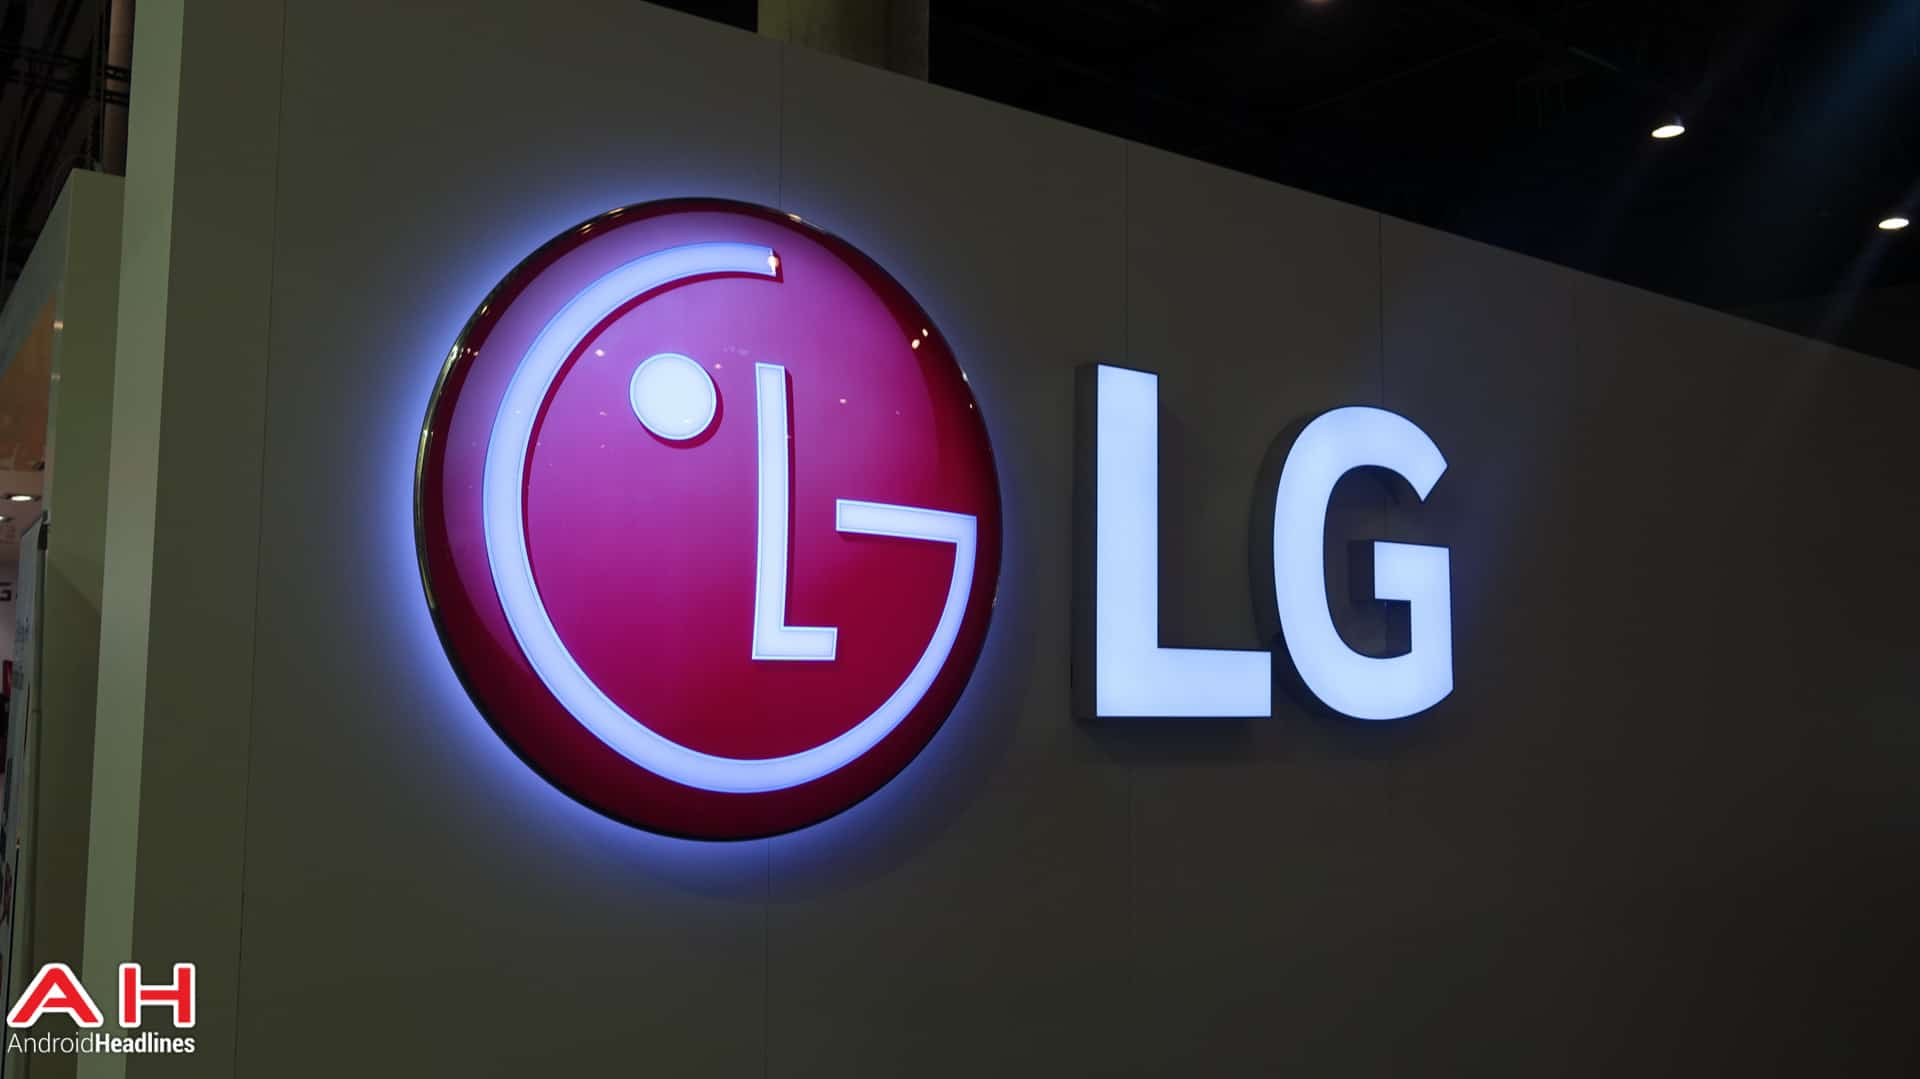 Despite Growth Lgs Target Stock Price Takes A Price Drop Android